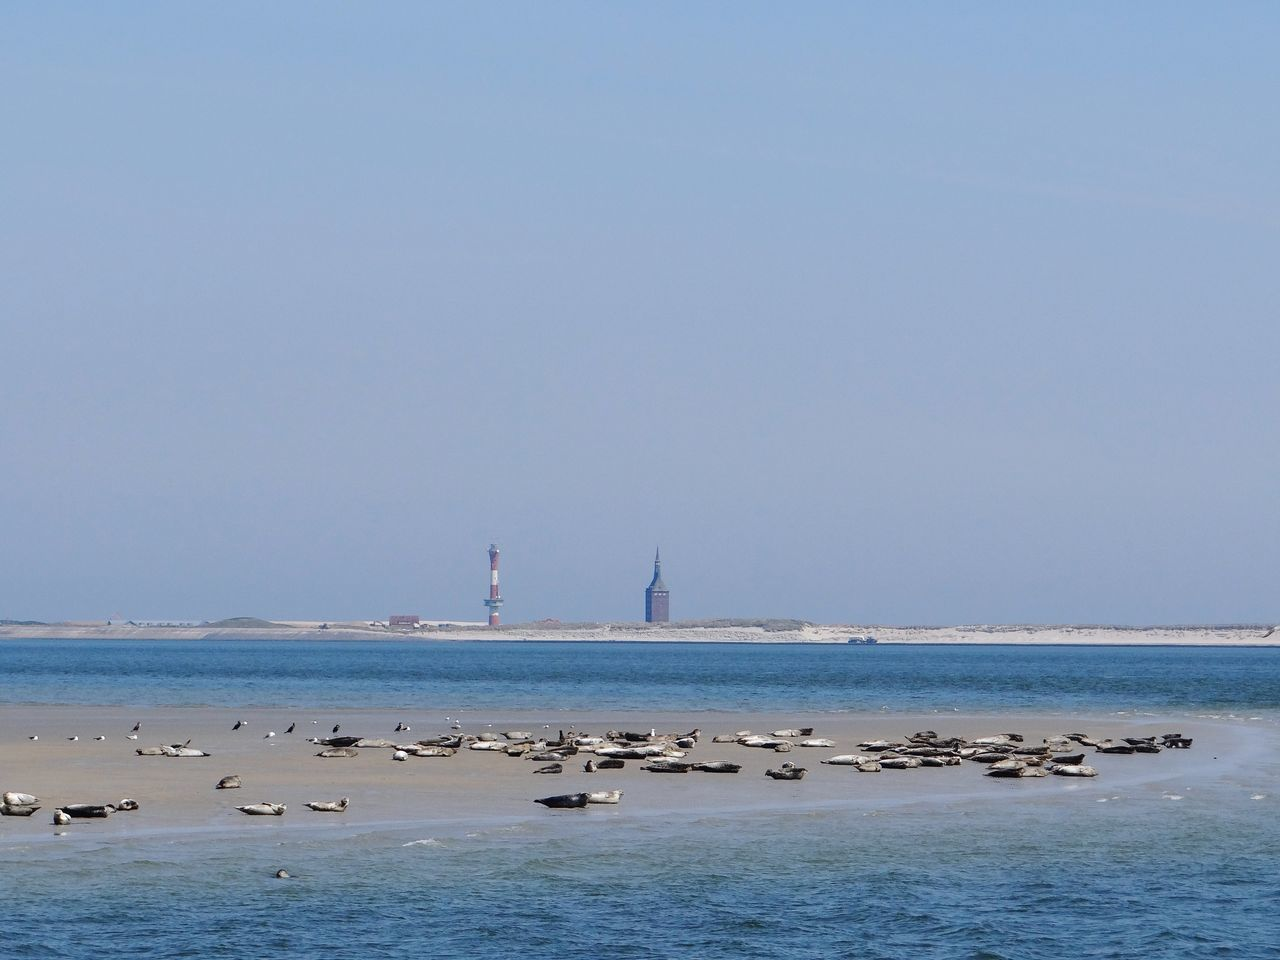 Wangerooge Wattenmeer Sea Animals In The Wild Seehunde Seehundbank Animal Wildlife Nature Nordsee North Sea Lighthouse Leuchtturm Island Tidelands Seal Seals On Beach Spiekeroog  Beach Meer Horizon Over Water Animal Tiere Westturm